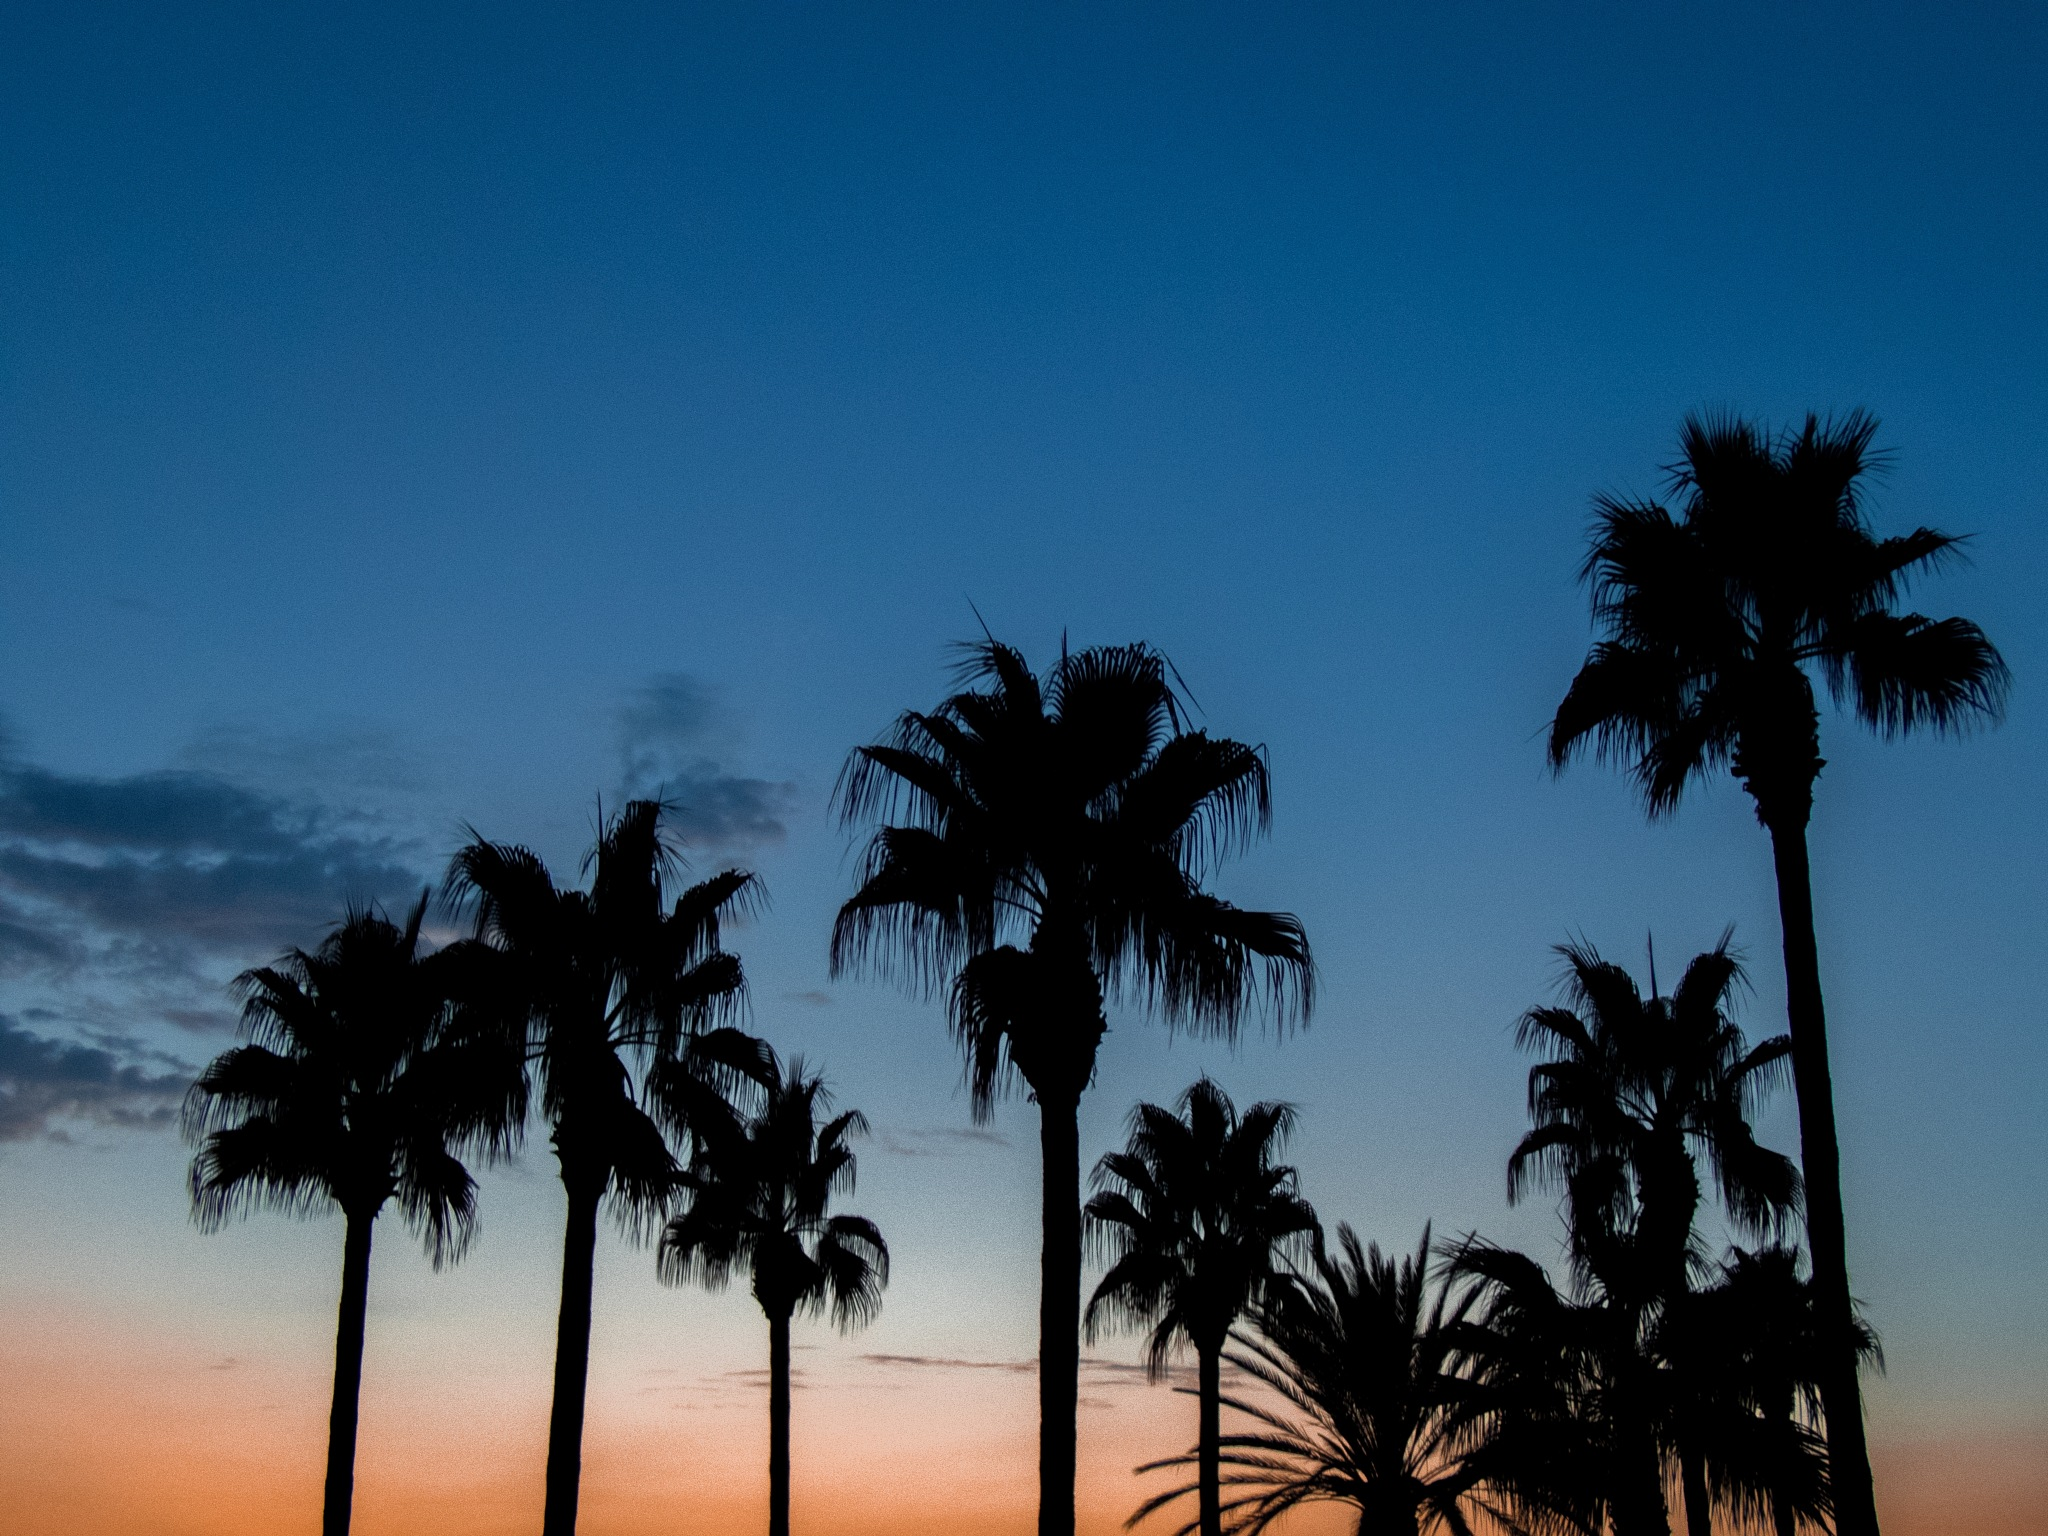 Palm Tree Skyline by Gerrit Beetstra